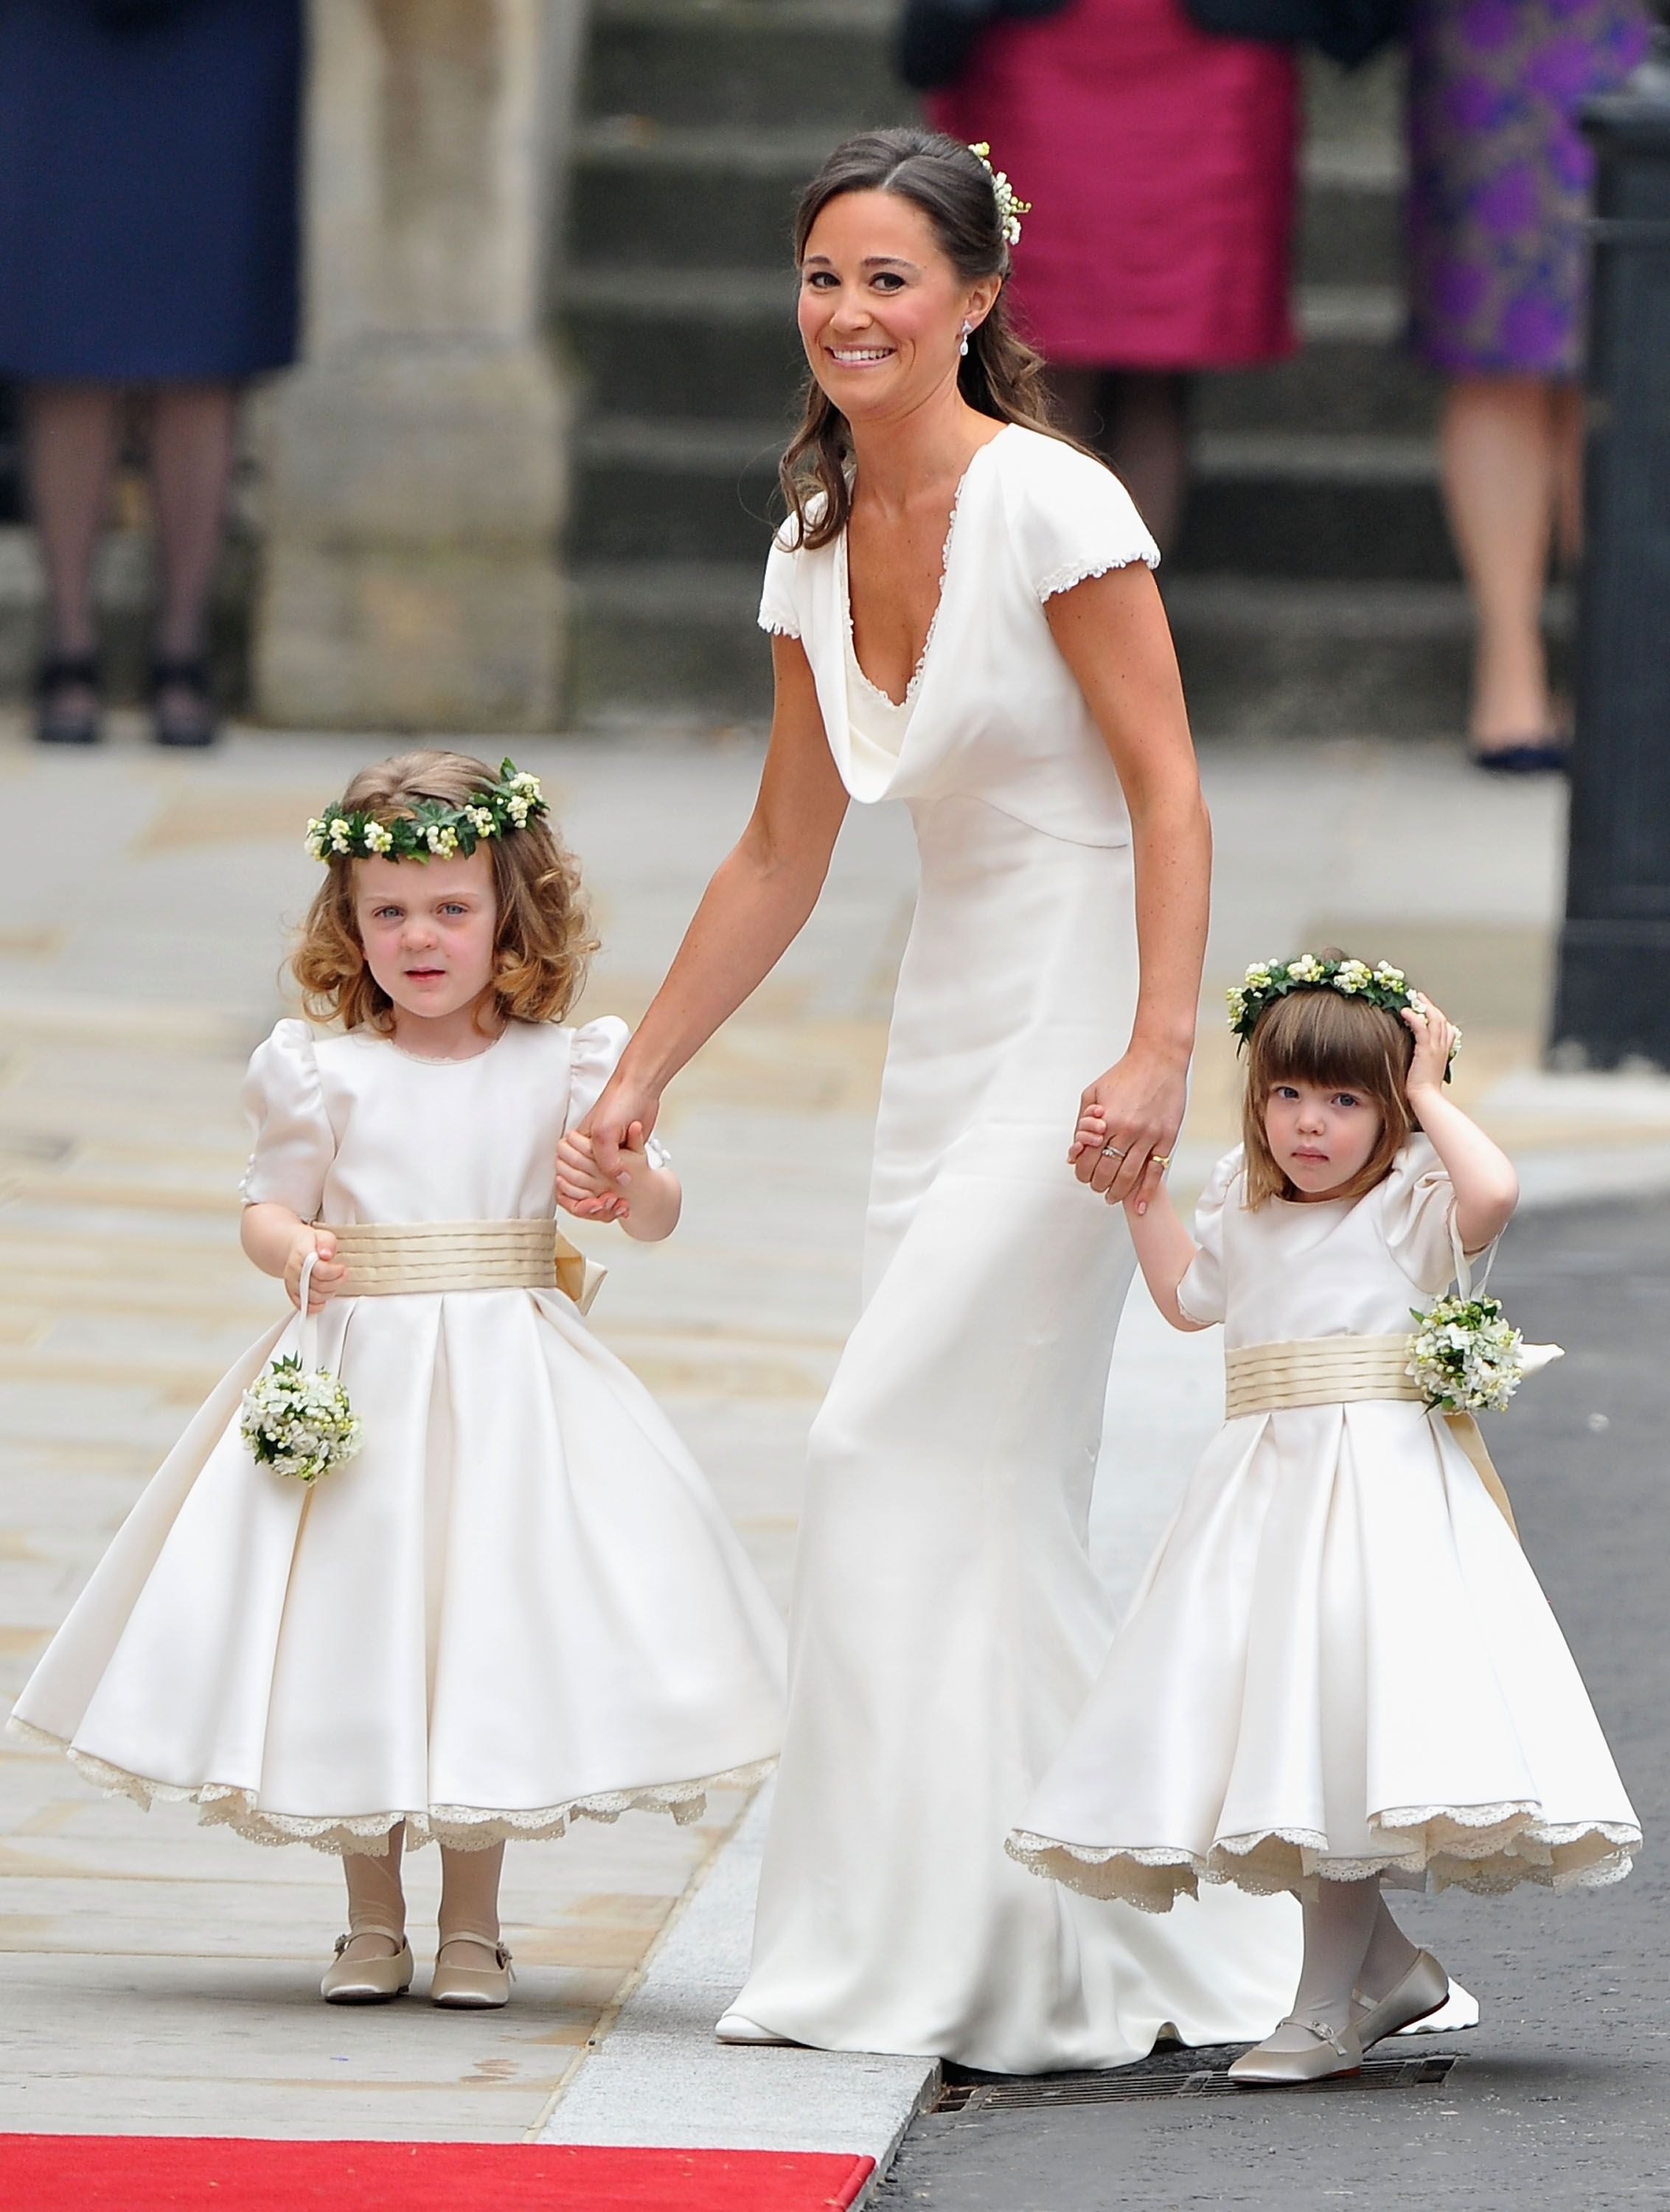 Sister of the bride and Maid of Honour Pippa Middleton holds hands with Grace Van Cutsem and Eliza Lopes as they arrive to attend the Royal Wedding of Prince William to Catherine Middleton at Westminster Abbey on April 29, 2011 | Photo: Getty Images